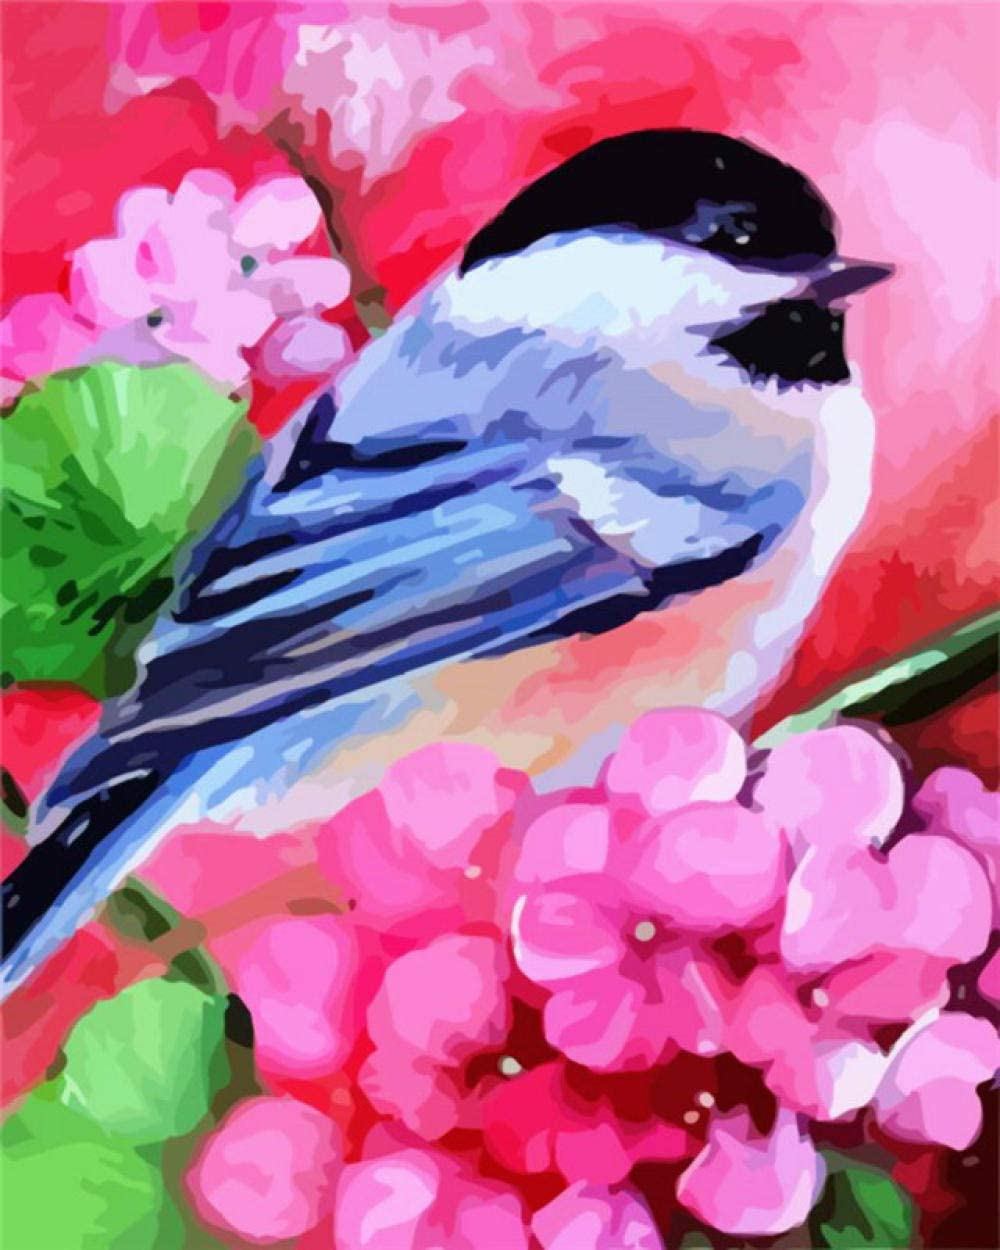 HRKDHBS Paint by Numbers Bird Flower with Industry Surprise price No. 1 DIY Frame Ac 40X50Cm